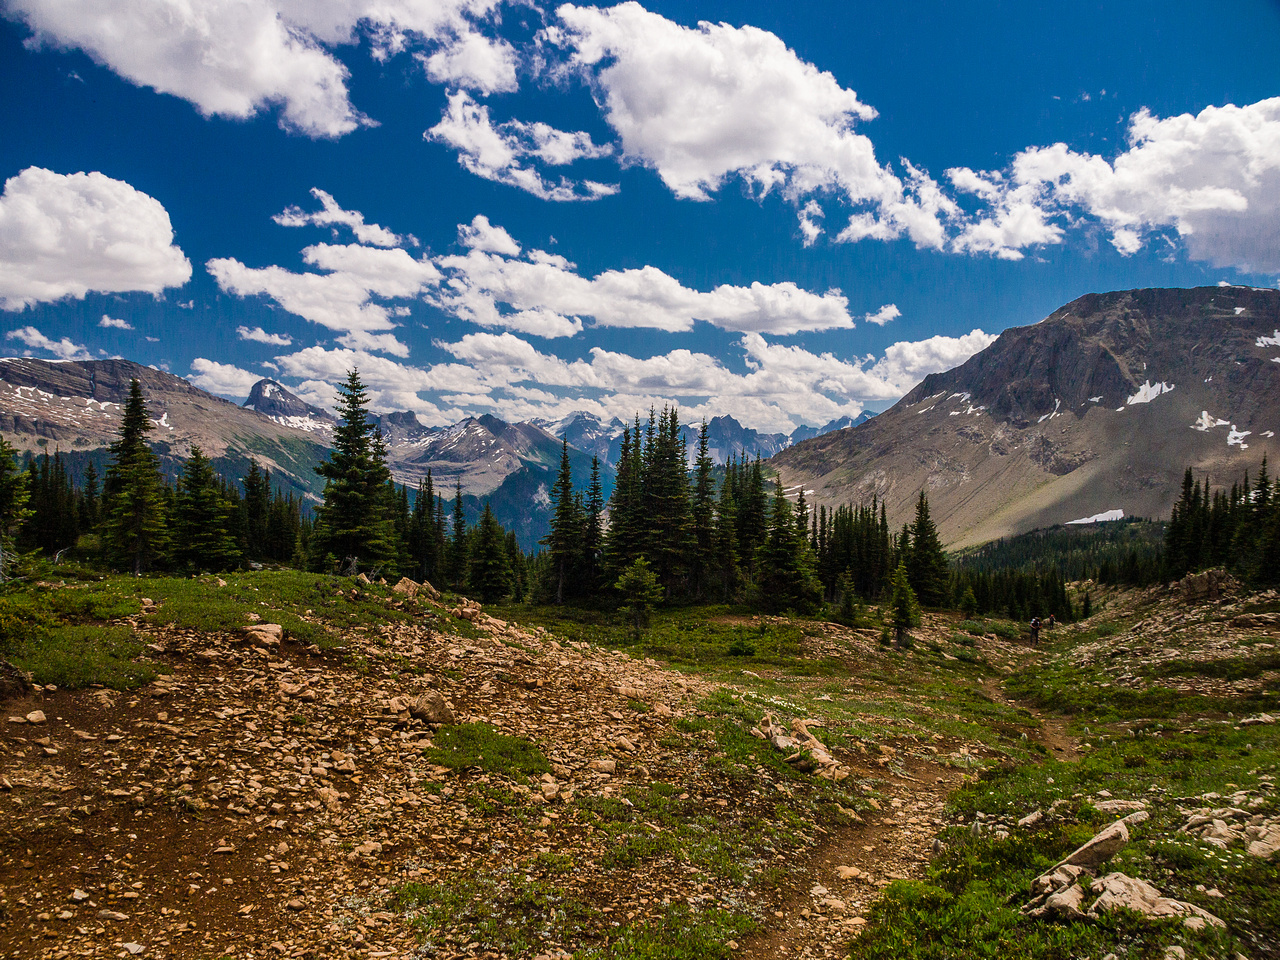 The trail is much less defined higher up as we approach tree line - this is looking back down valley.